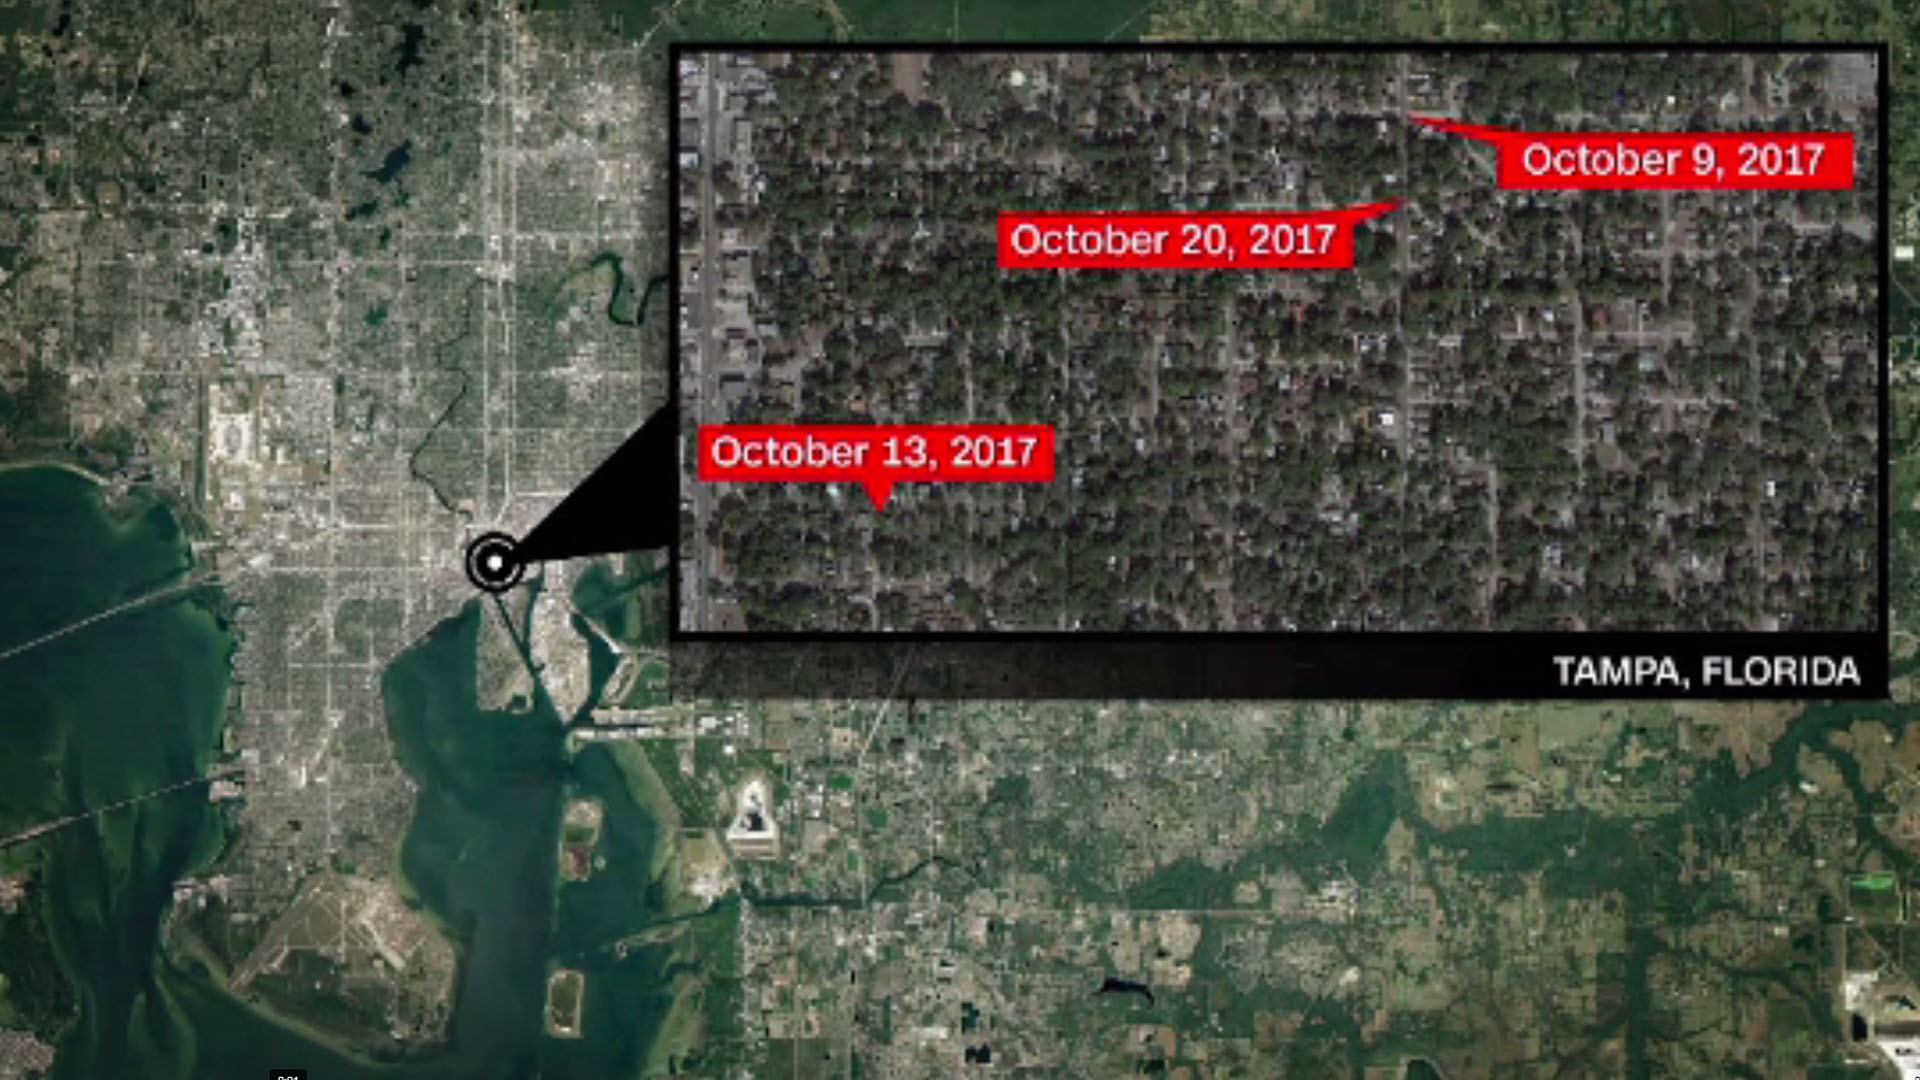 tampa_killings_map_1508623984476-159532.jpg57771300